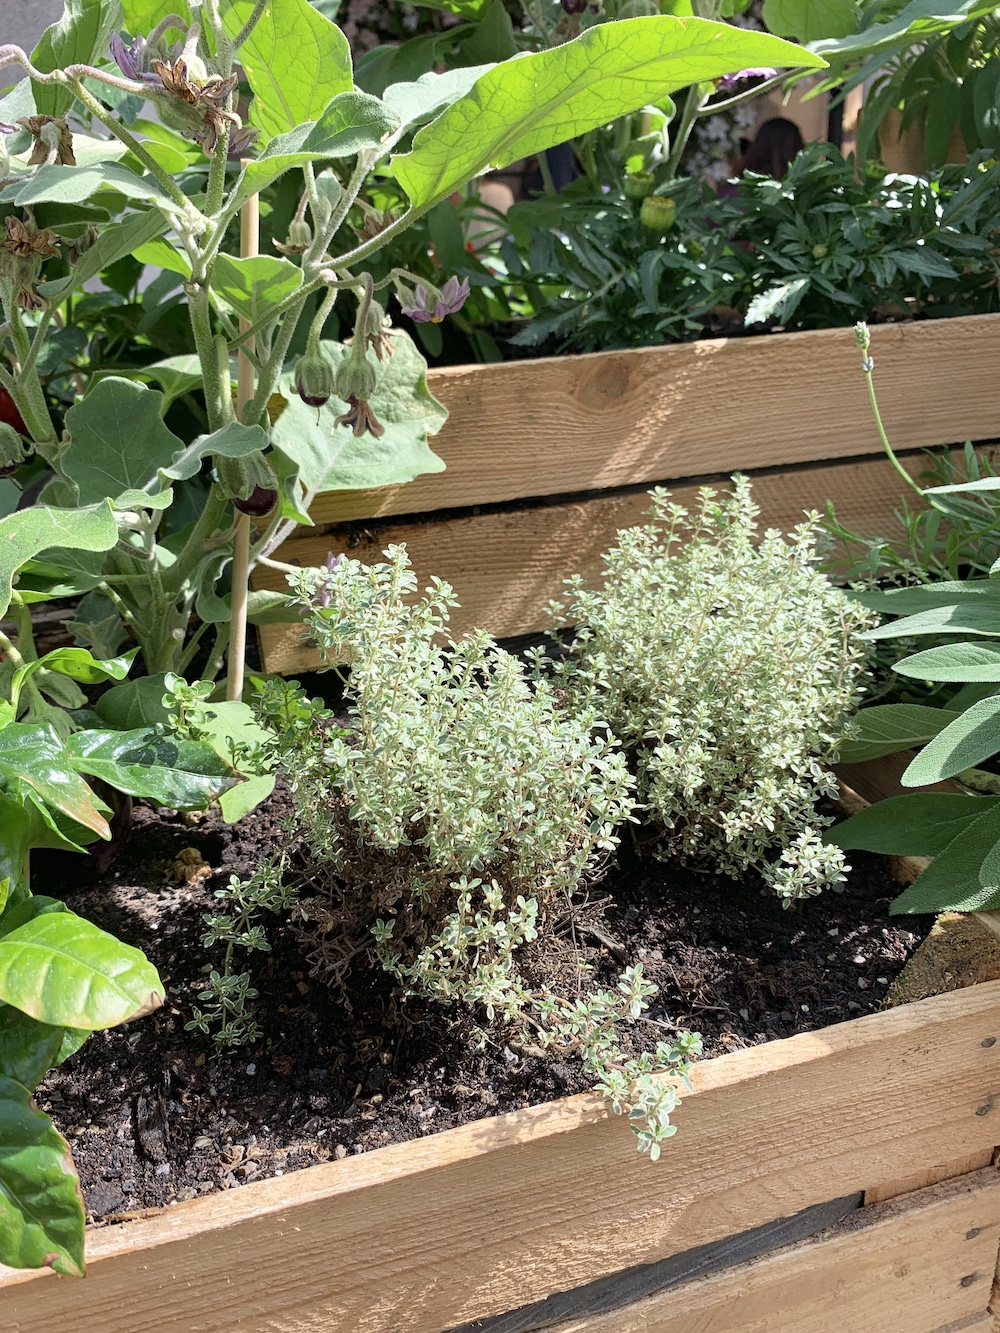 Crate Gardening for Small Spaces Silver Thyme With Sage #Garden #Gardening #SmallSpace #SmallSpaceGardening #ContainerGardening #VegetableGarden #HerbGarden #PorchGarden #PatioGarden